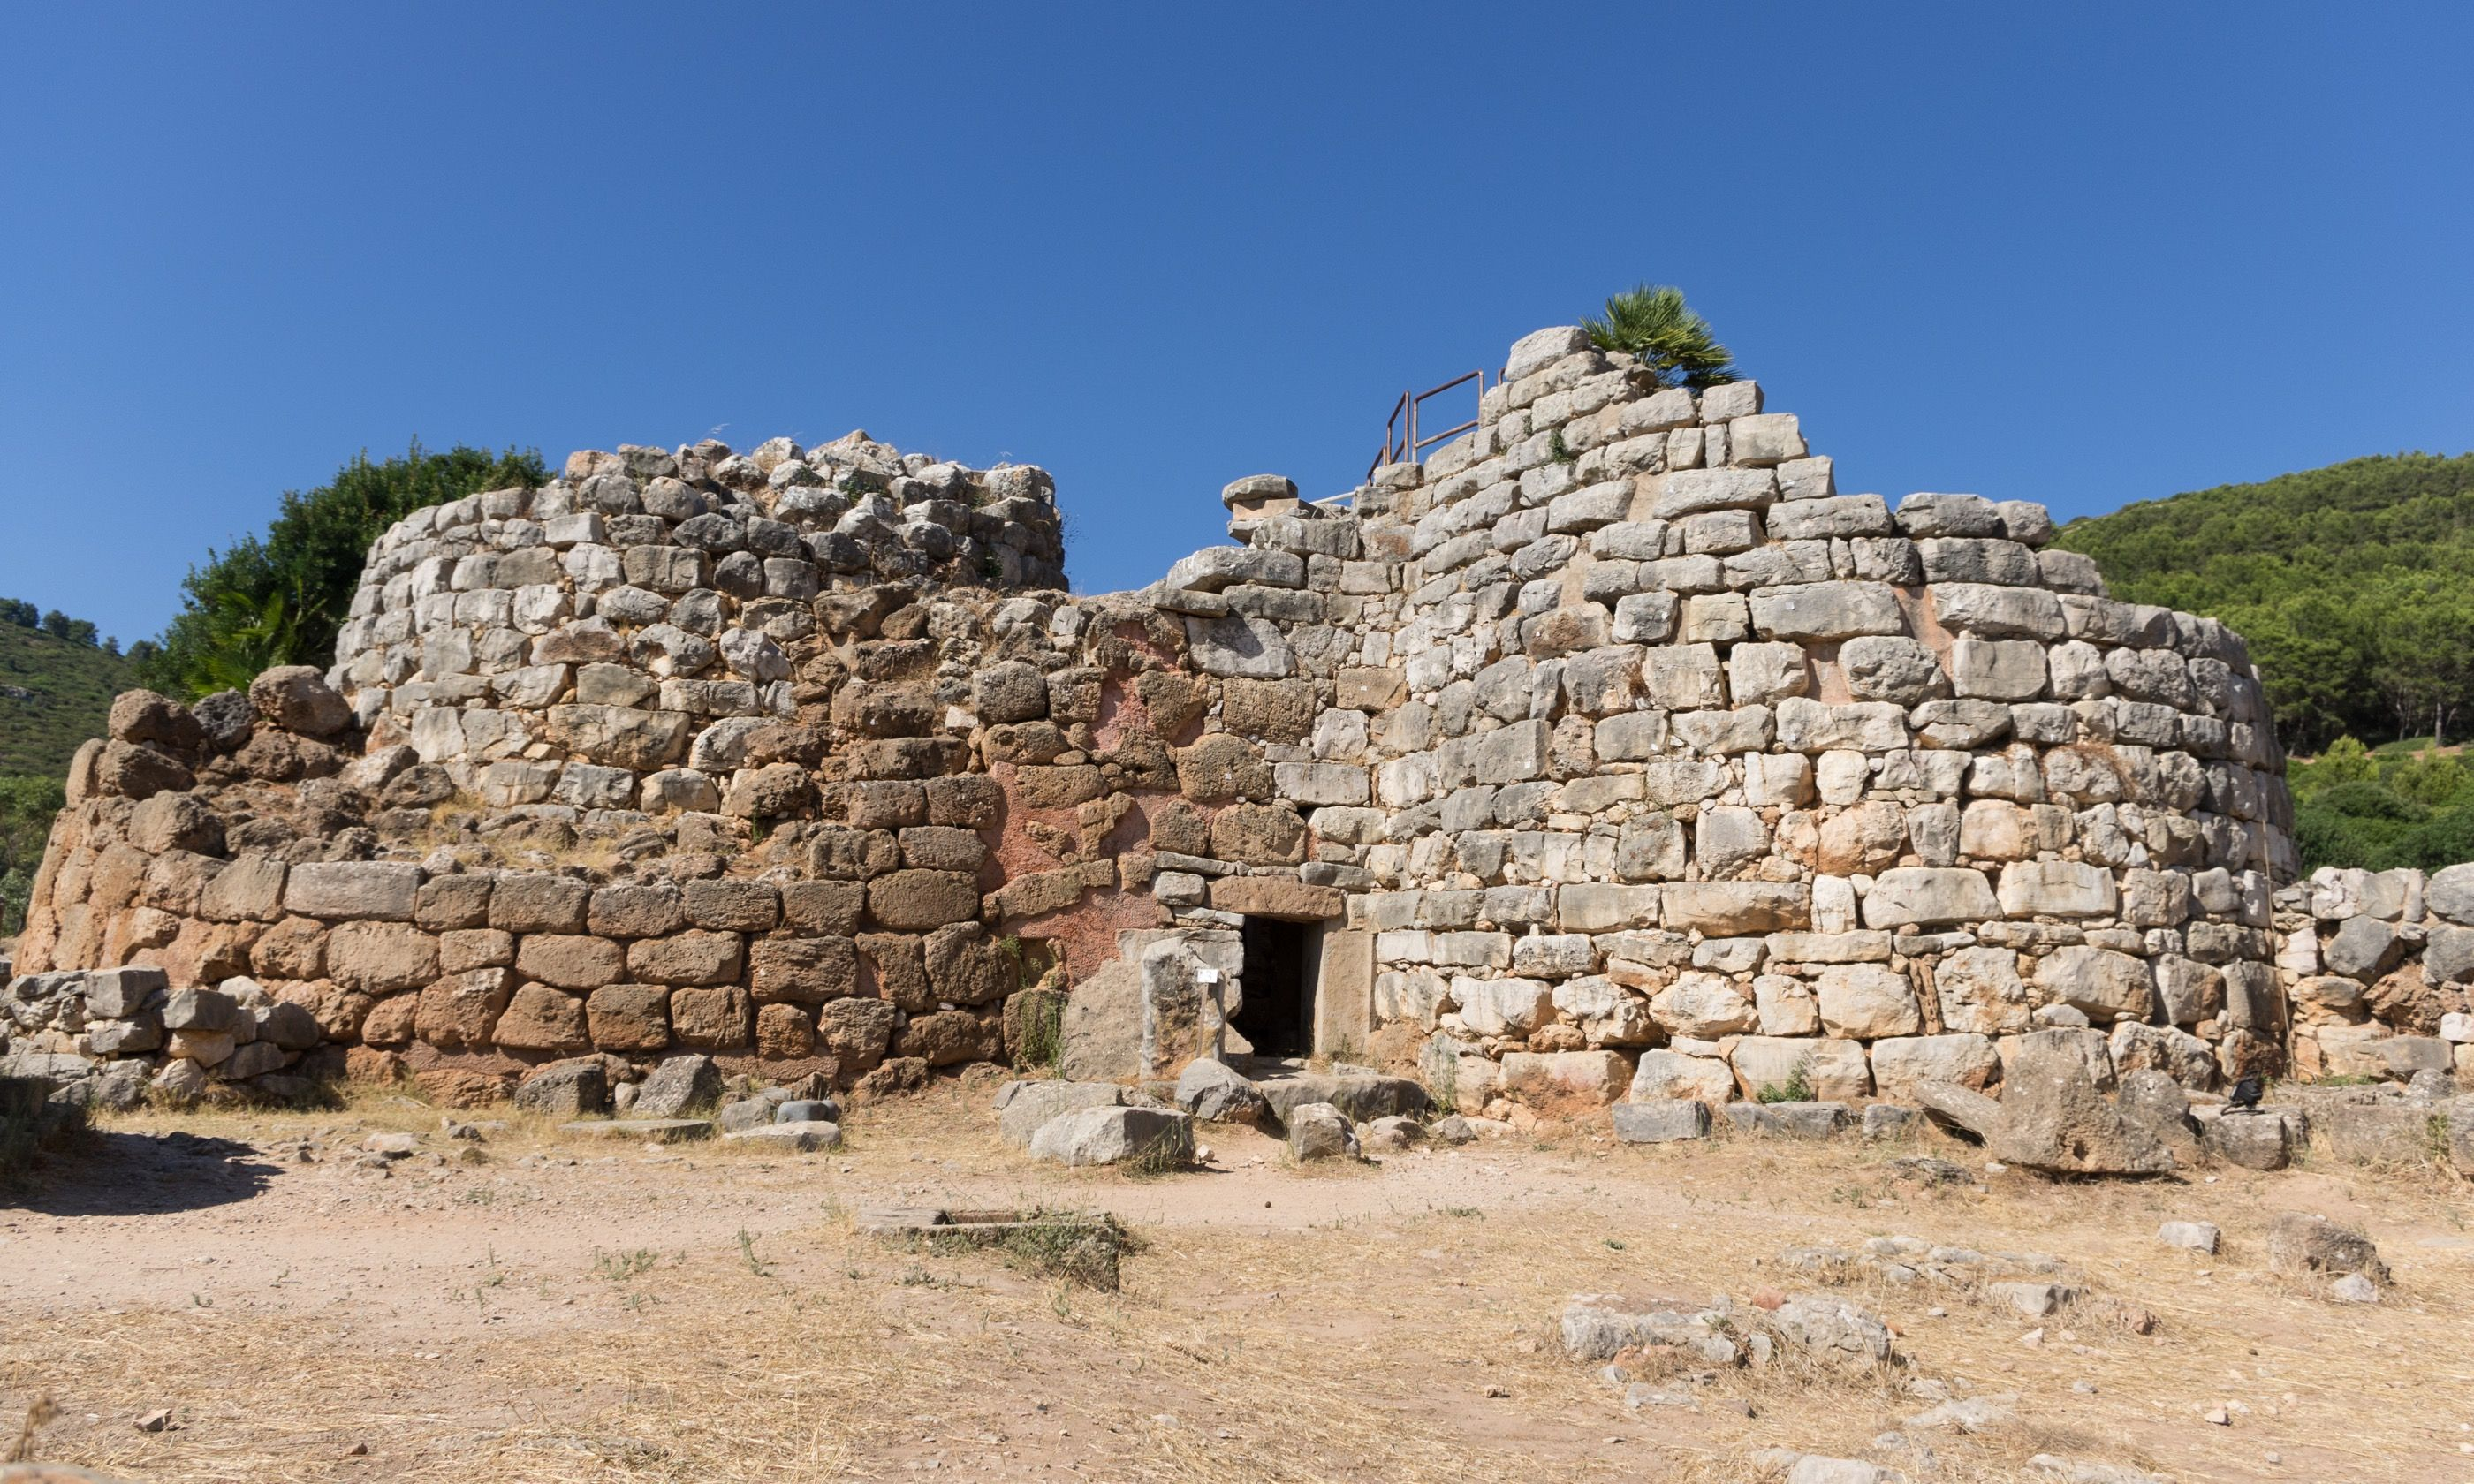 The nuraghe in Palmavera (Dreamstime)